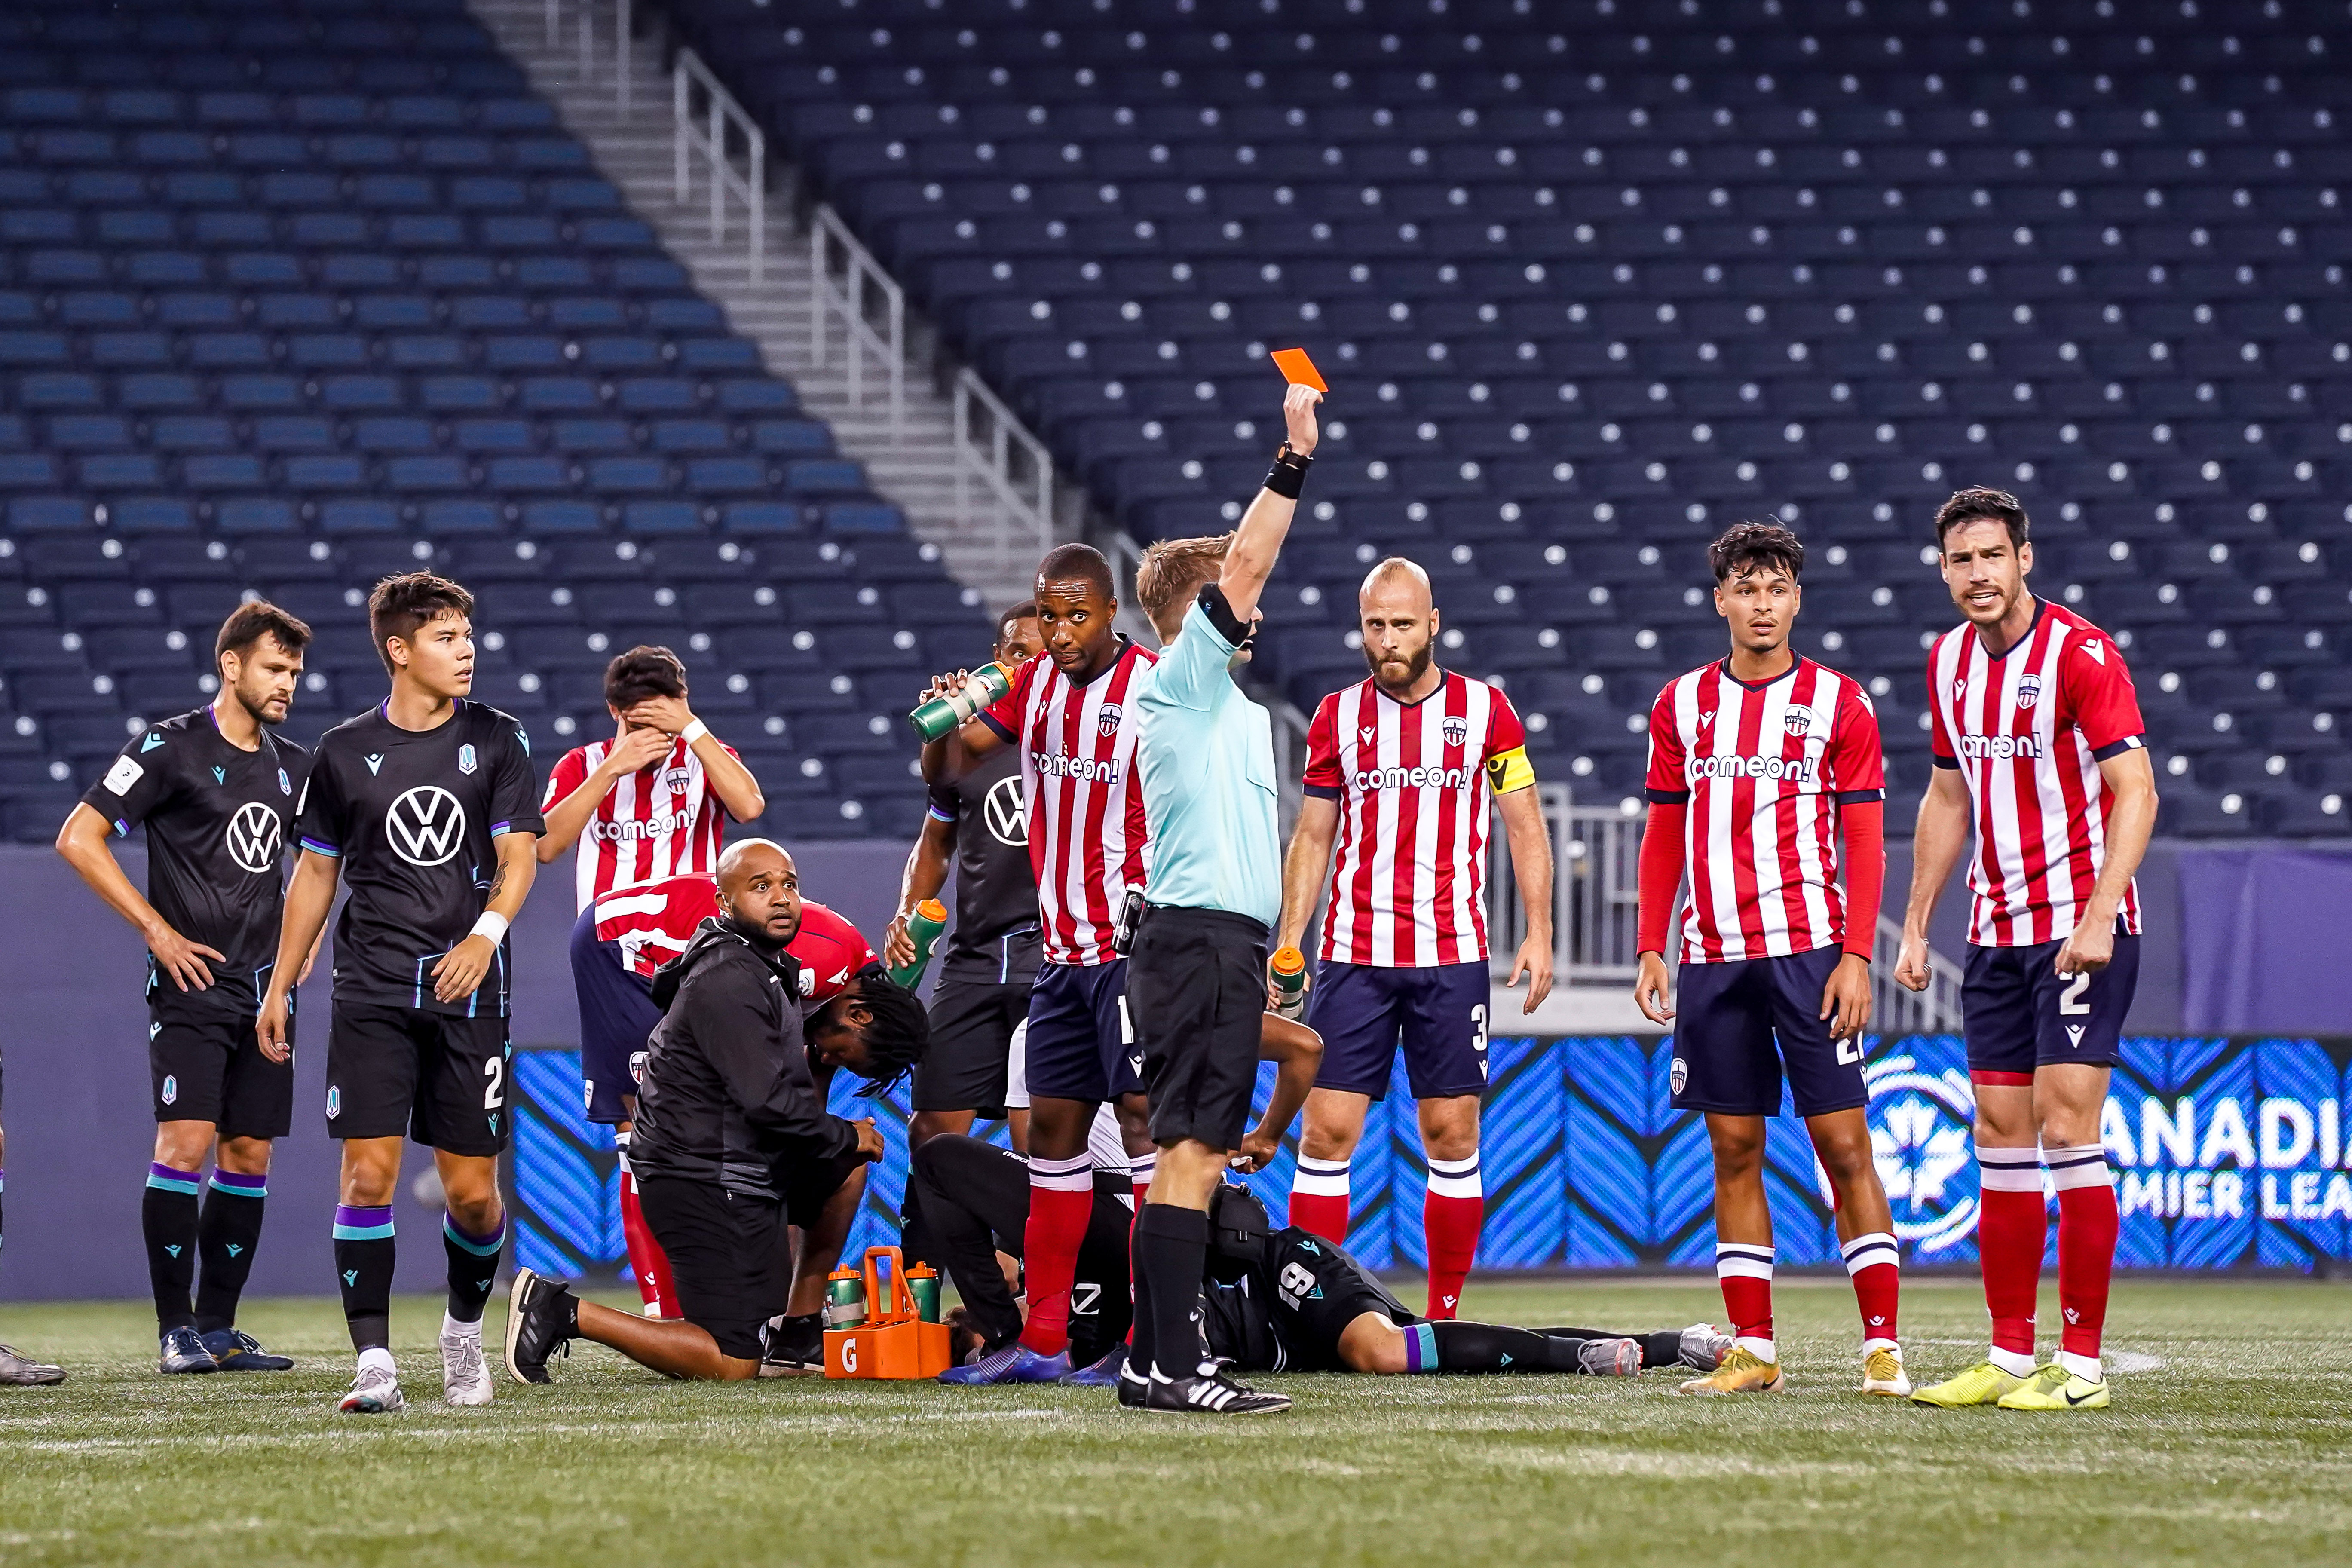 July 21, 2021. Pacific FC vs Atlético Ottawa. First-Half. Referee Ben Hoskins shows a red card to Ben McKendry of Atlético Ottawa (not shown).